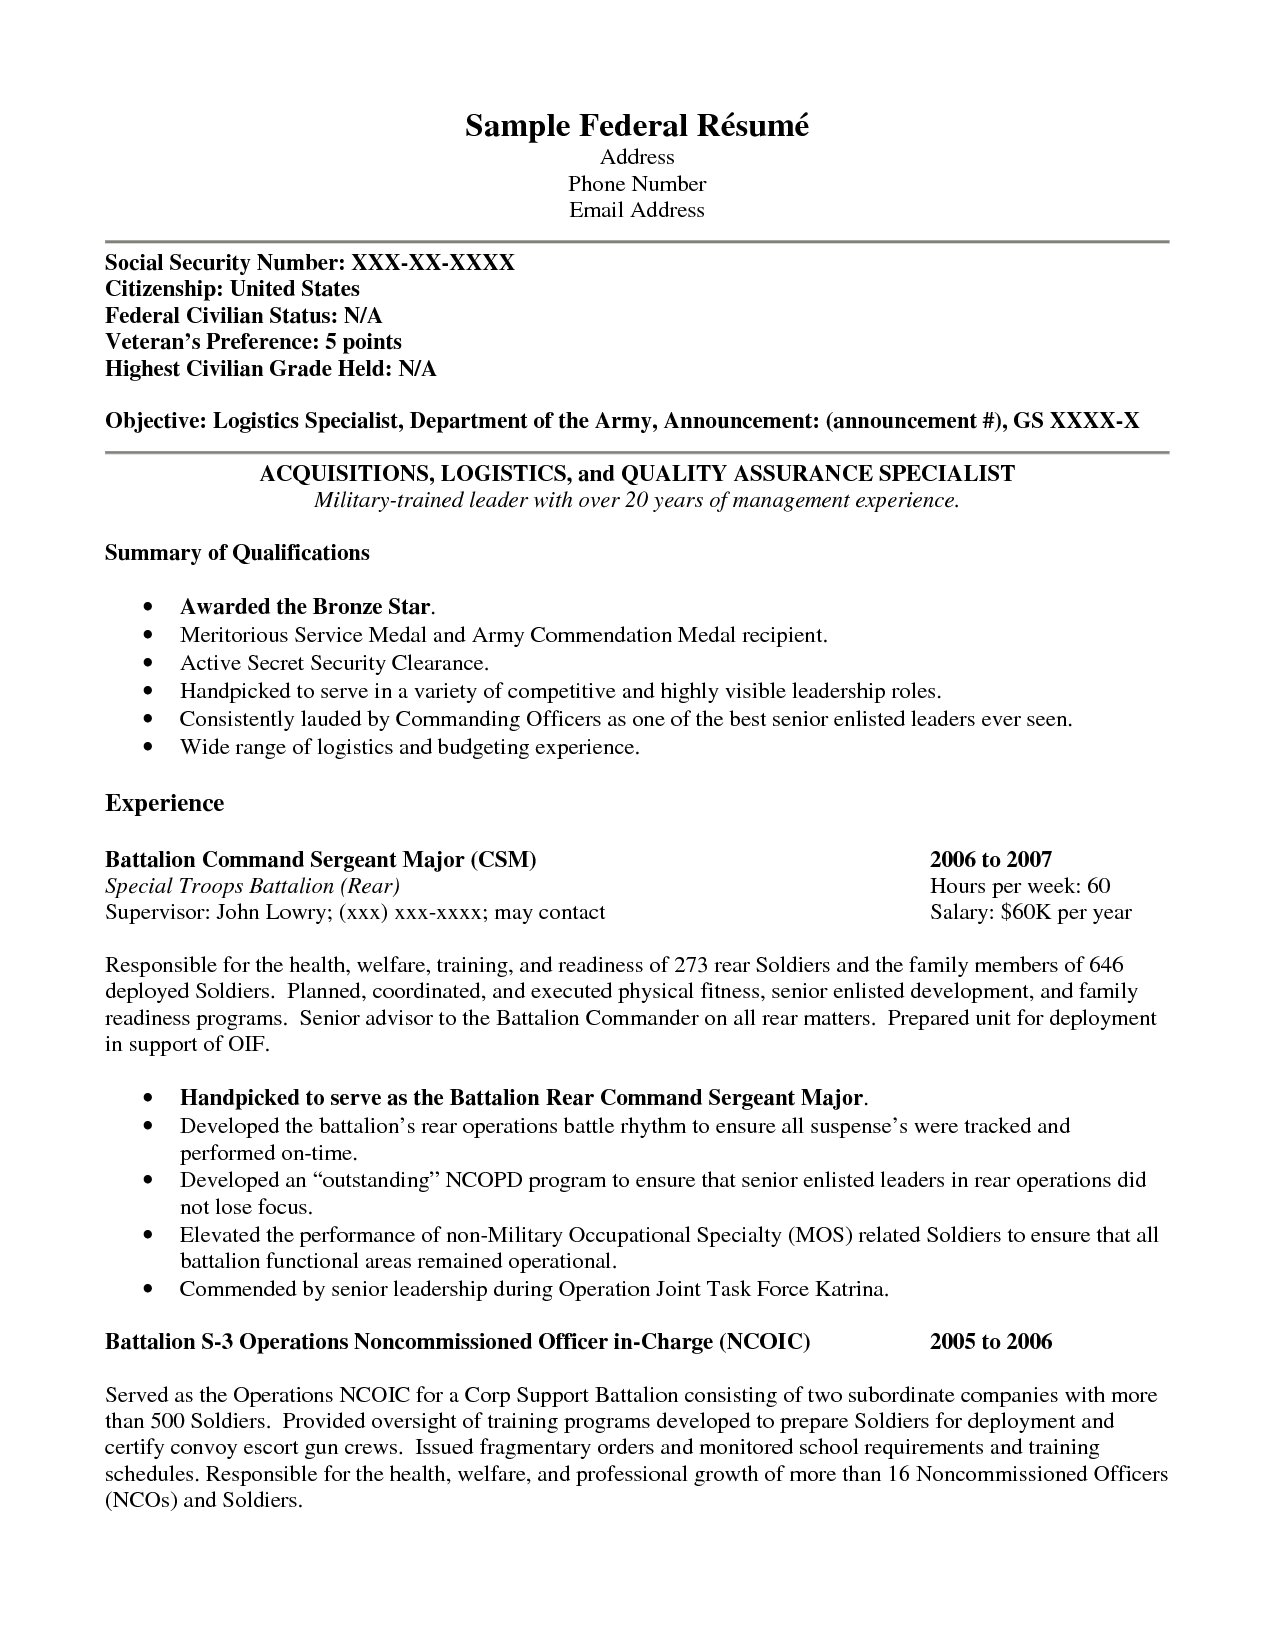 Free Military Resume Builder Templates And Service For Veterans Veteran  Template How Write Logistics Specialist Army  Military To Civilian Resume Builder